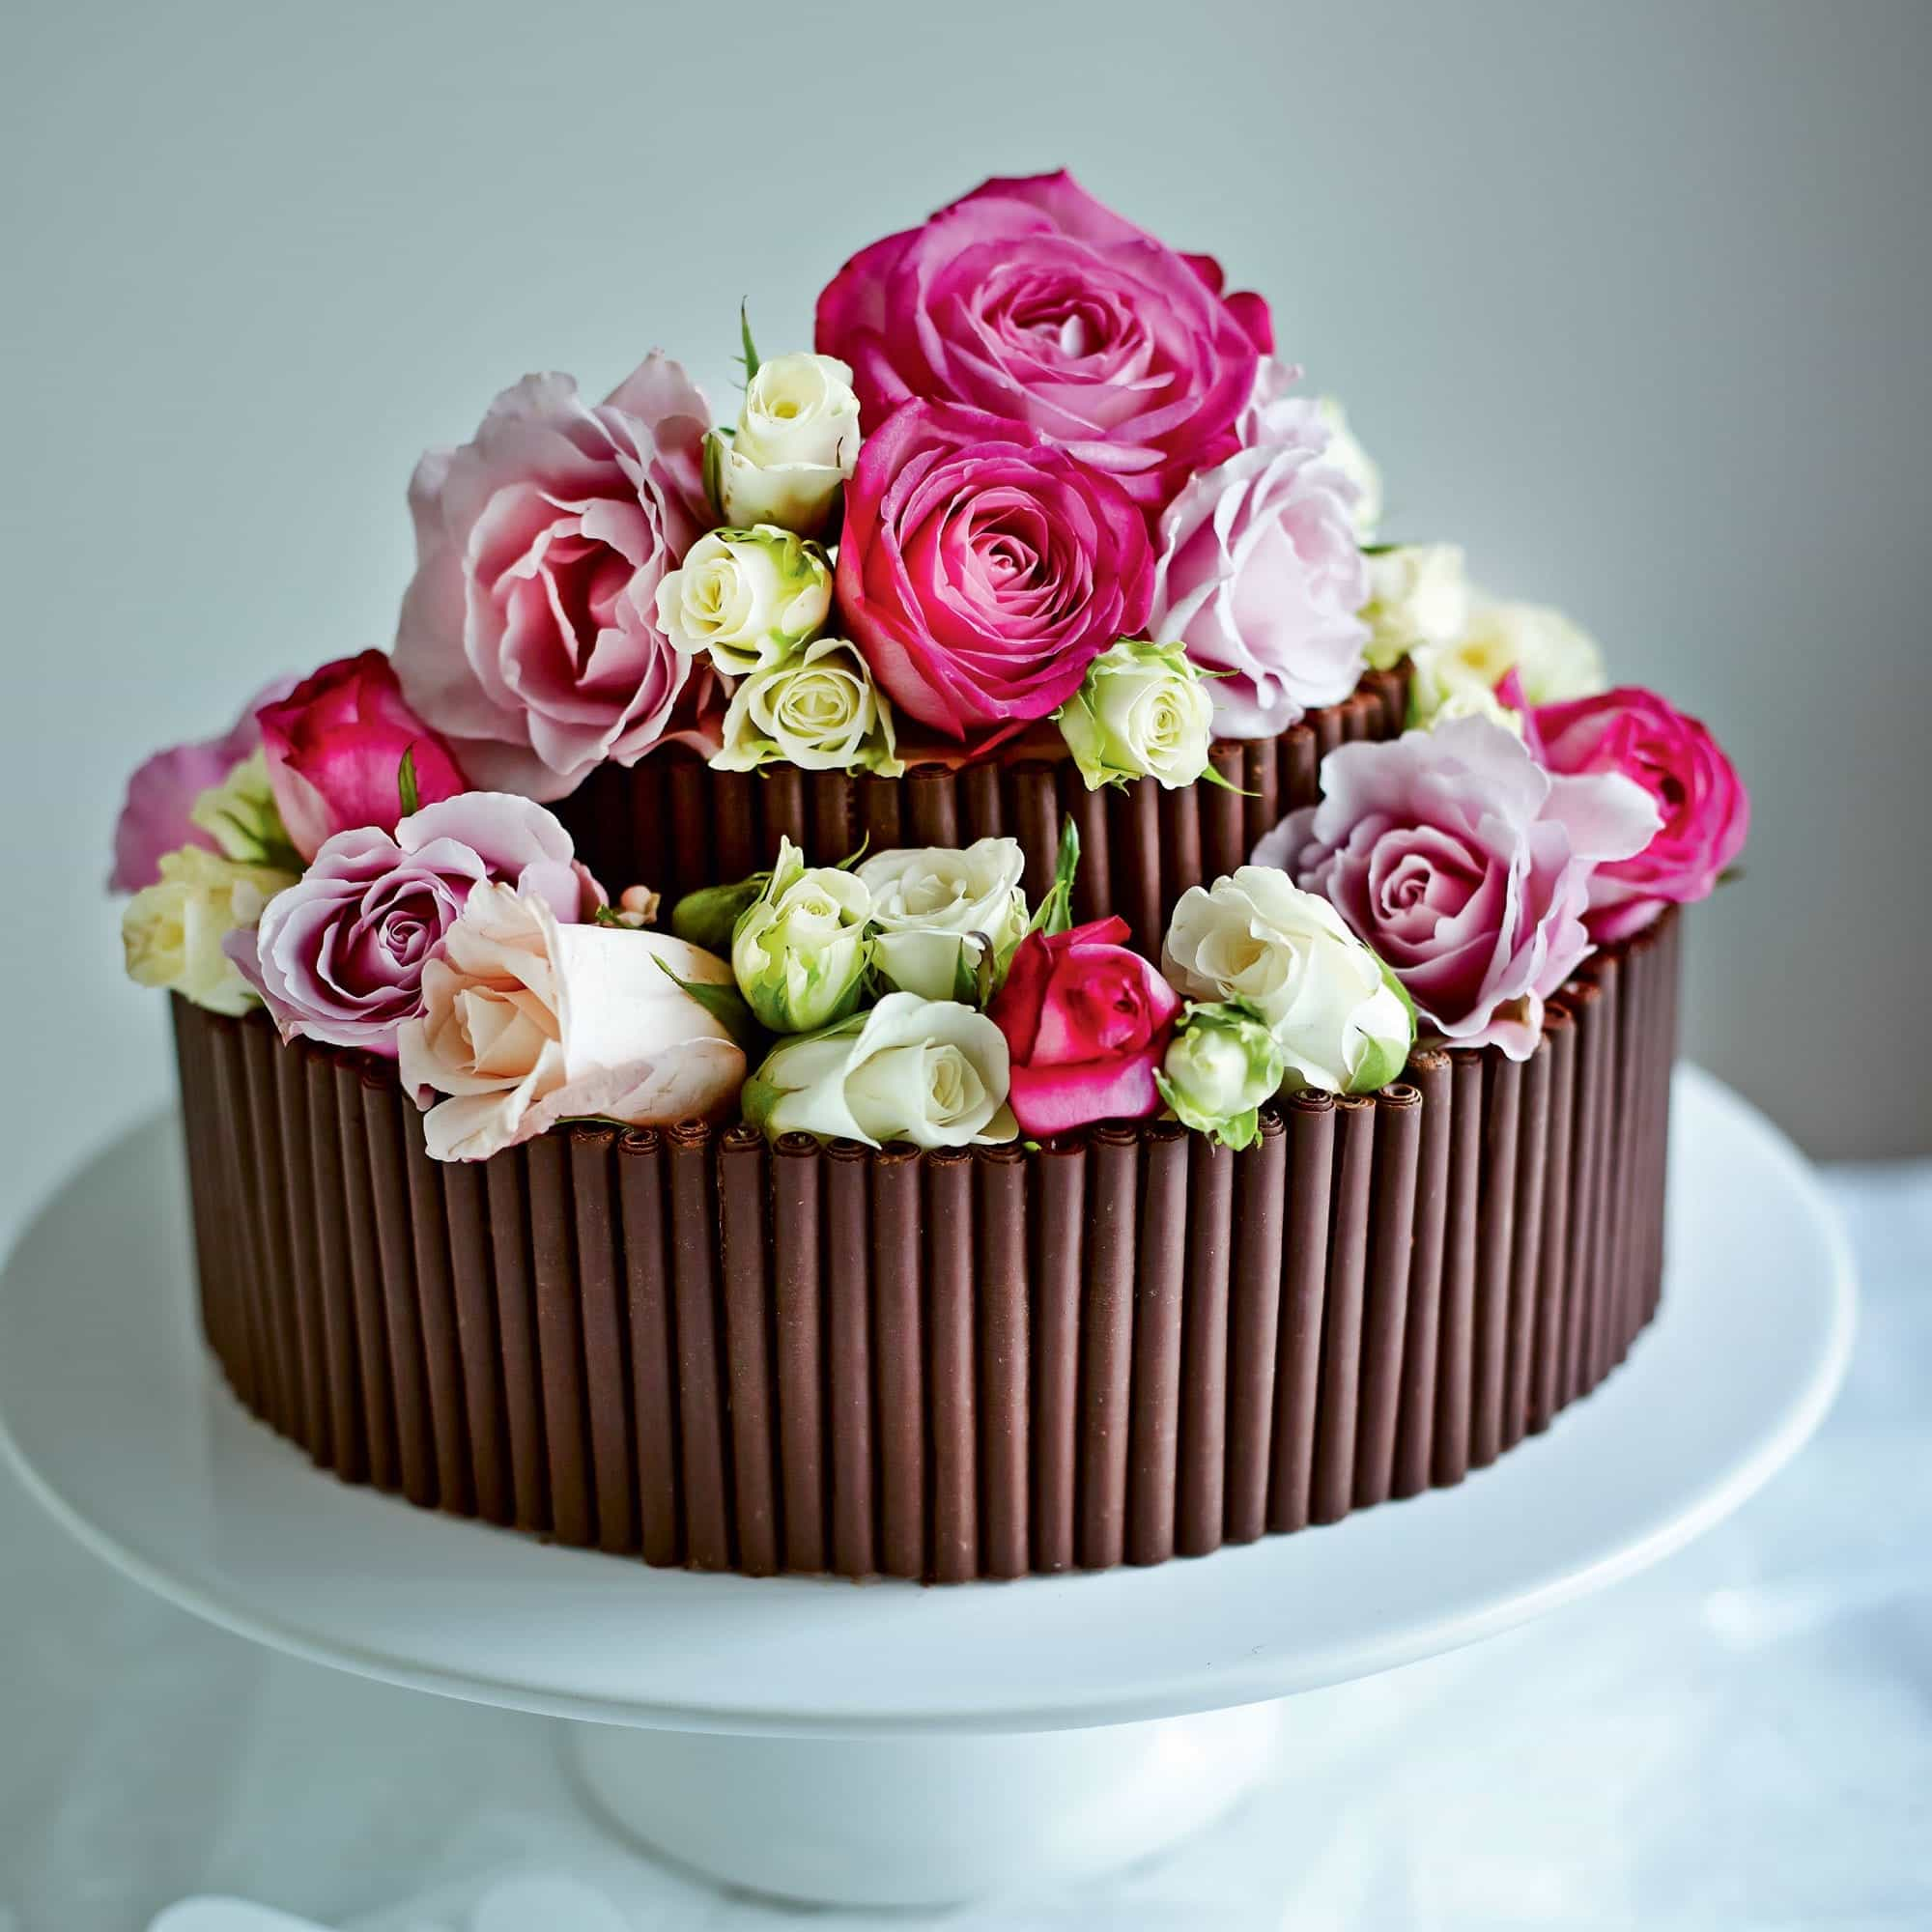 Small Chocolate Wedding Cake With Roses Top (View 10 of 30)